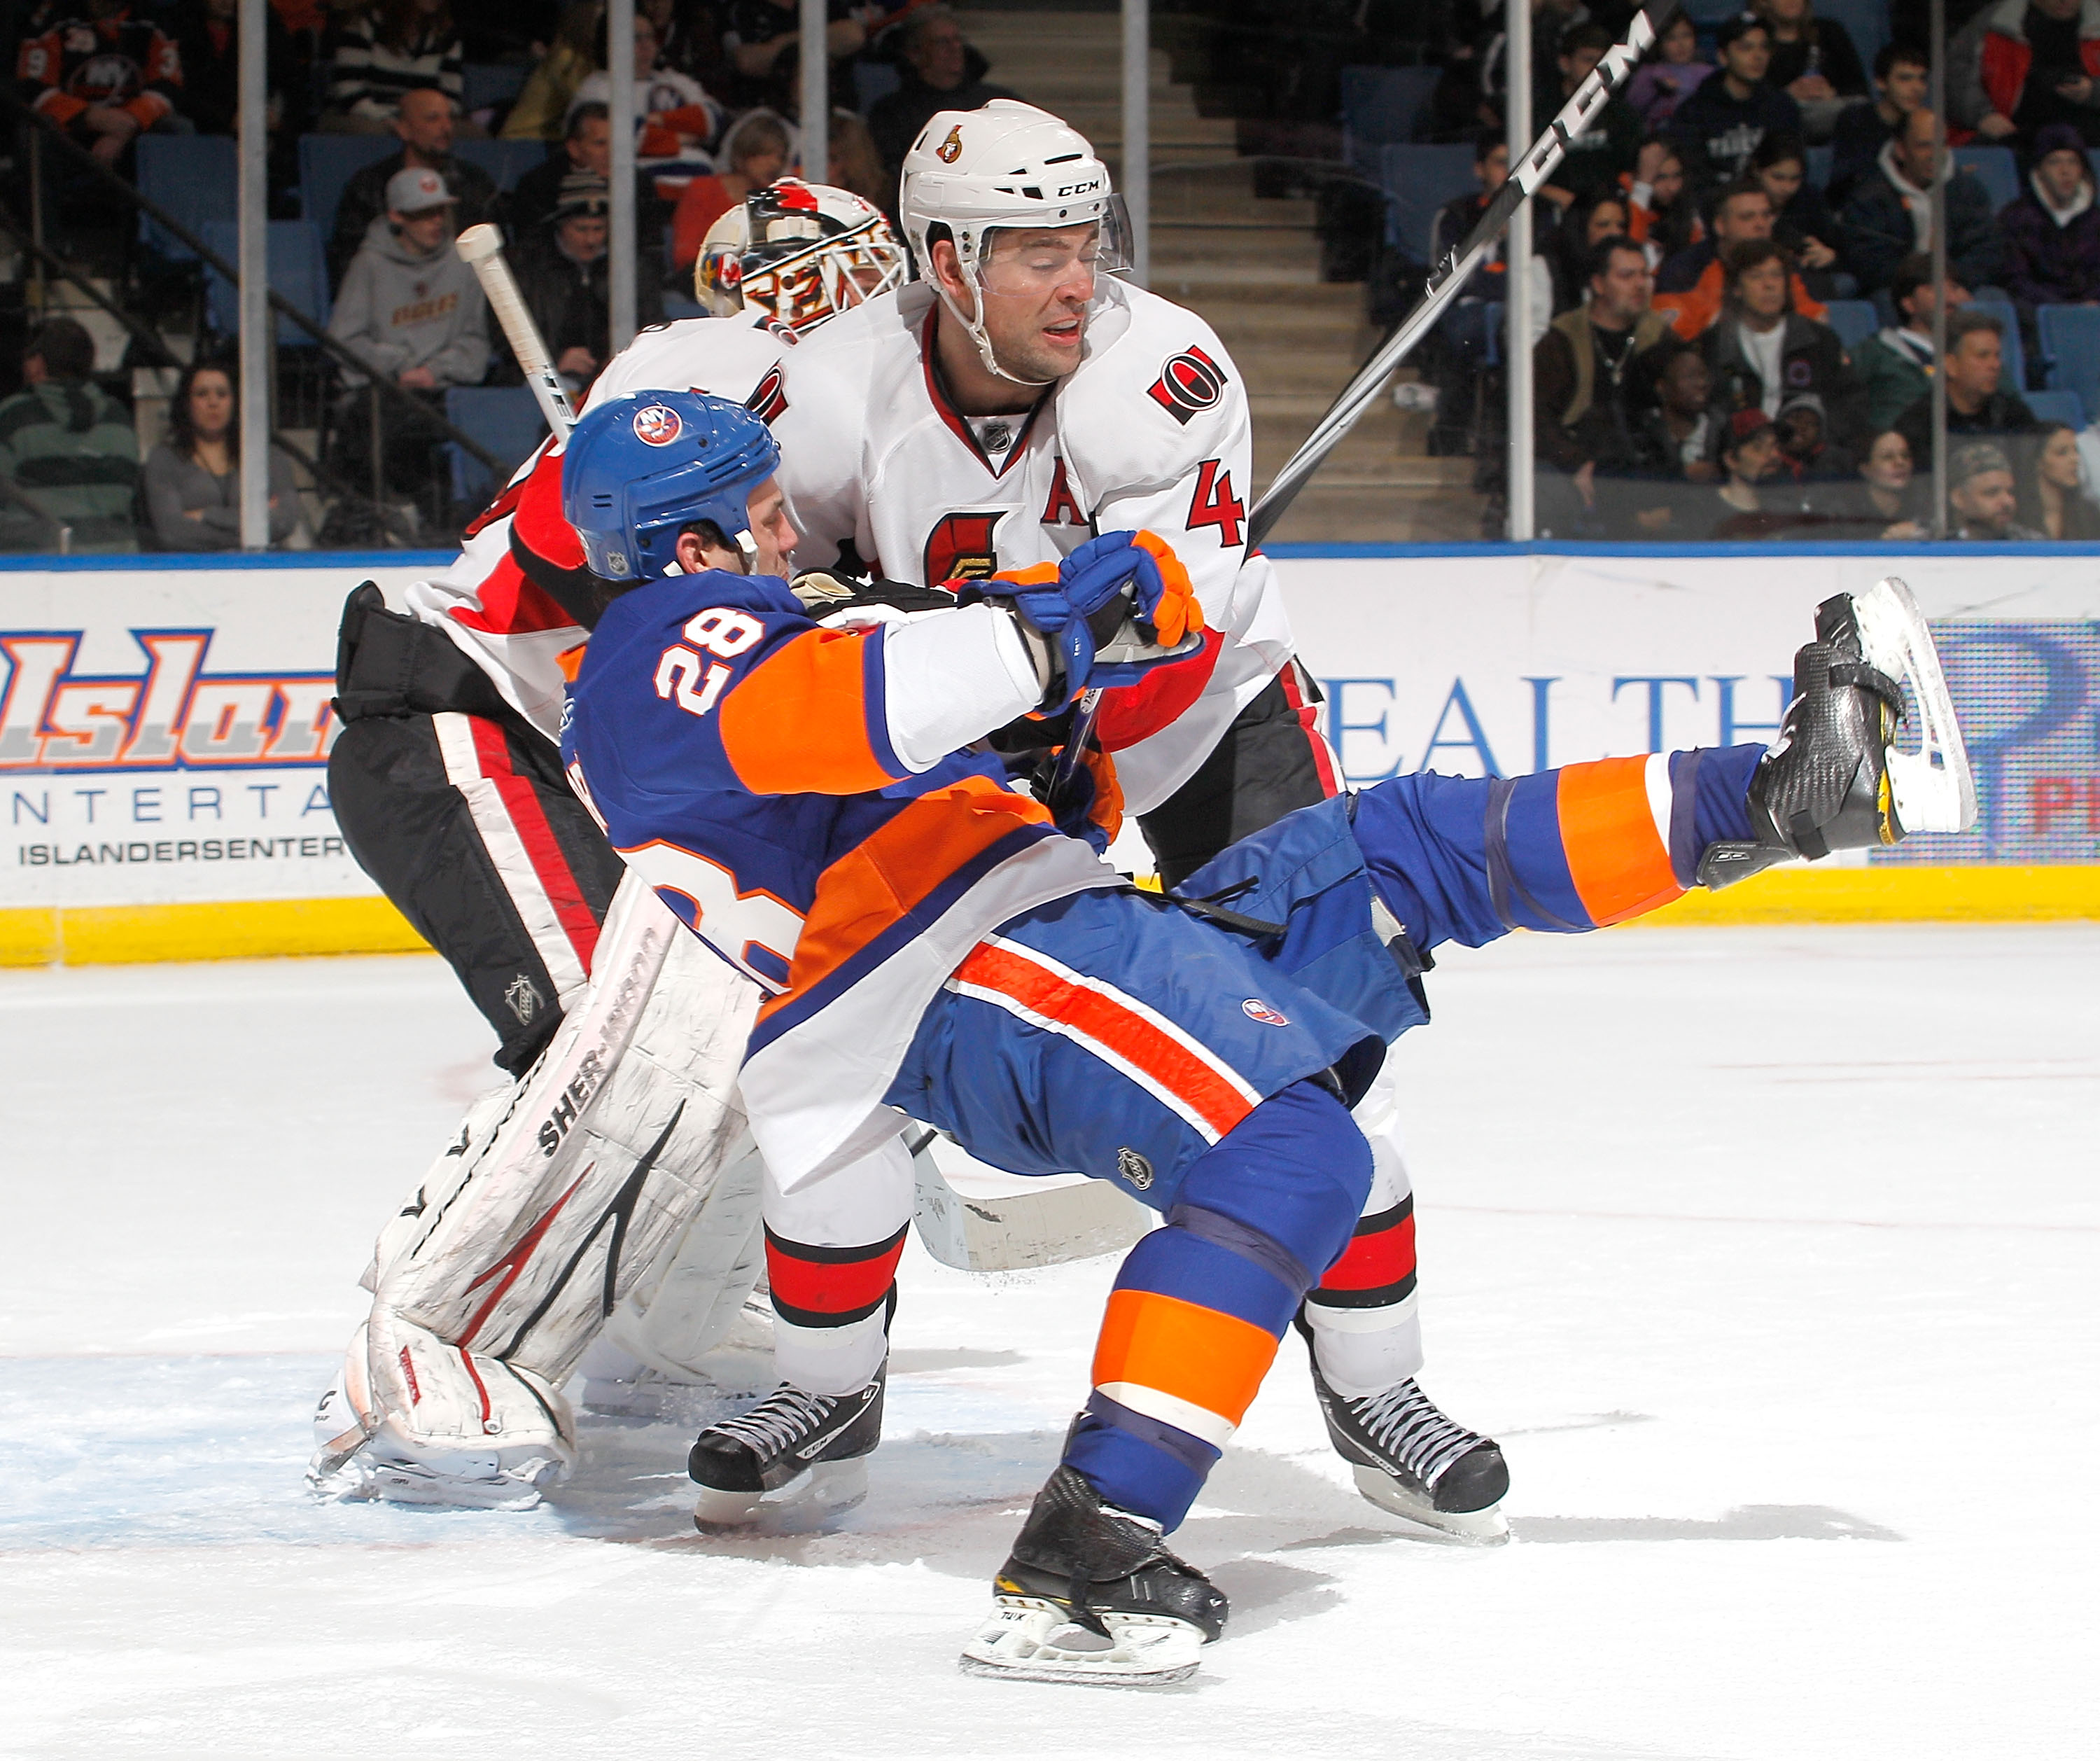 UNIONDALE, NY - FEBRUARY 05:  Chris Phillips #4 of the Ottawa Senators gets a penalty here as he takes down Zenon Konopka #28 of the New York Islanders during the second period of an NHL hockey game at the Nassau Coliseum on February 5, 2011 in Uniondale,